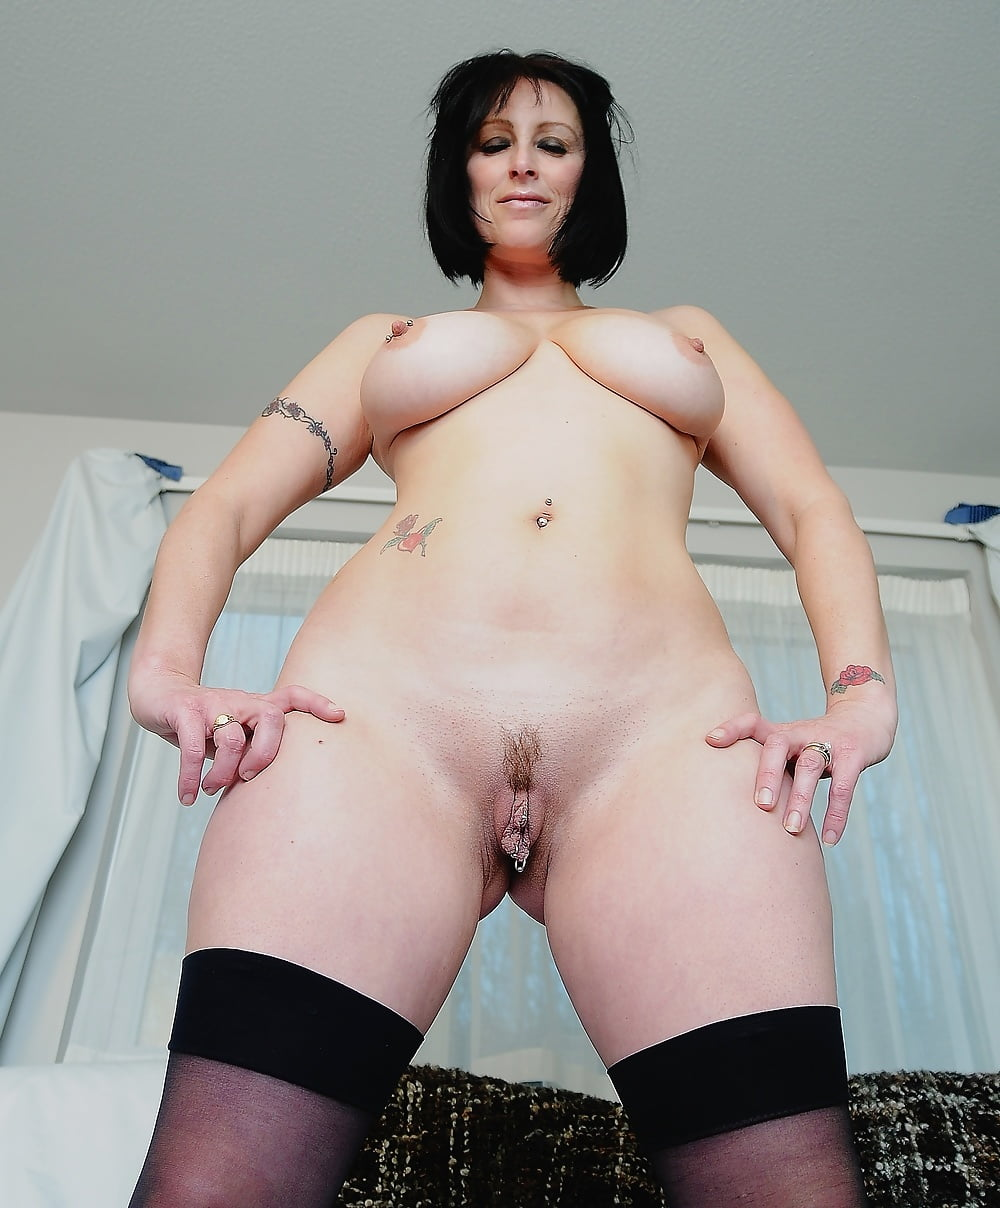 Big Nippled Mature Ladies 27 - 50 Pics - Xhamstercom-2260